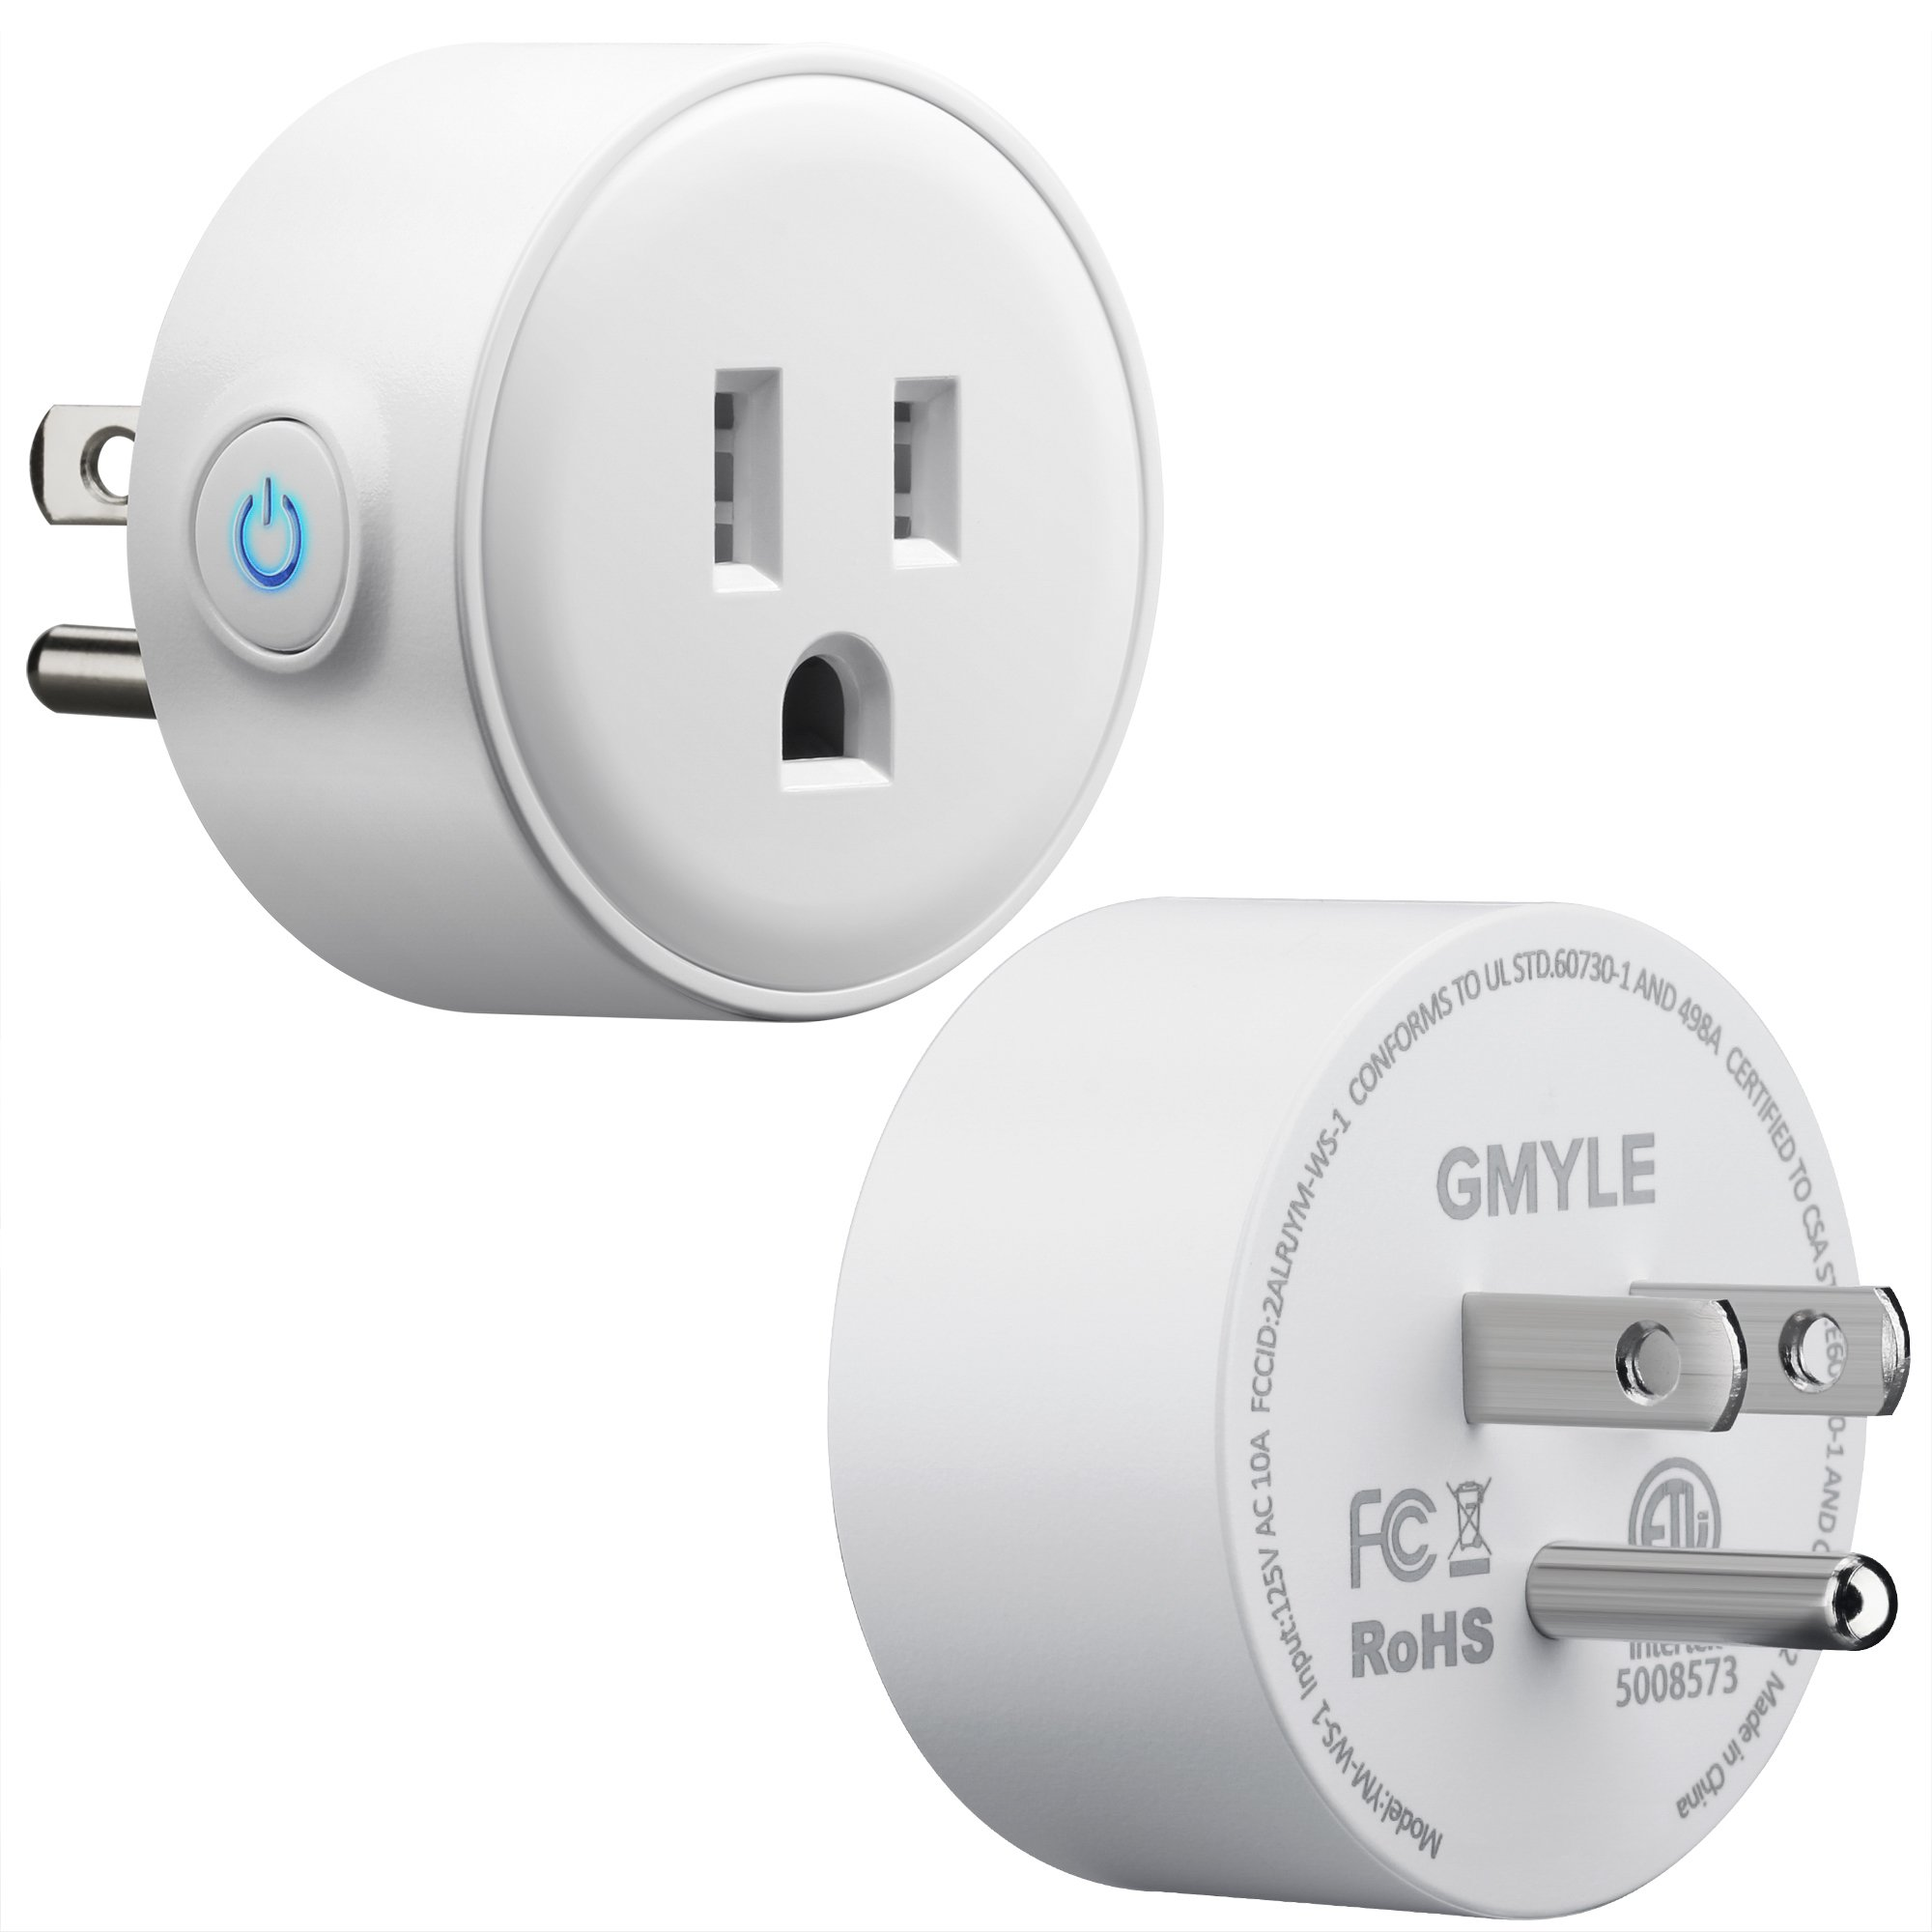 GMYLE 4 Pack Wifi Smart Plug Mini Outlet Power Control Socket, Remote Control Your Electric Devices from Anywhere, No Hub Required, Work with Amazon Alexa Echo Dot & Google Home, White by GMYLE (Image #9)